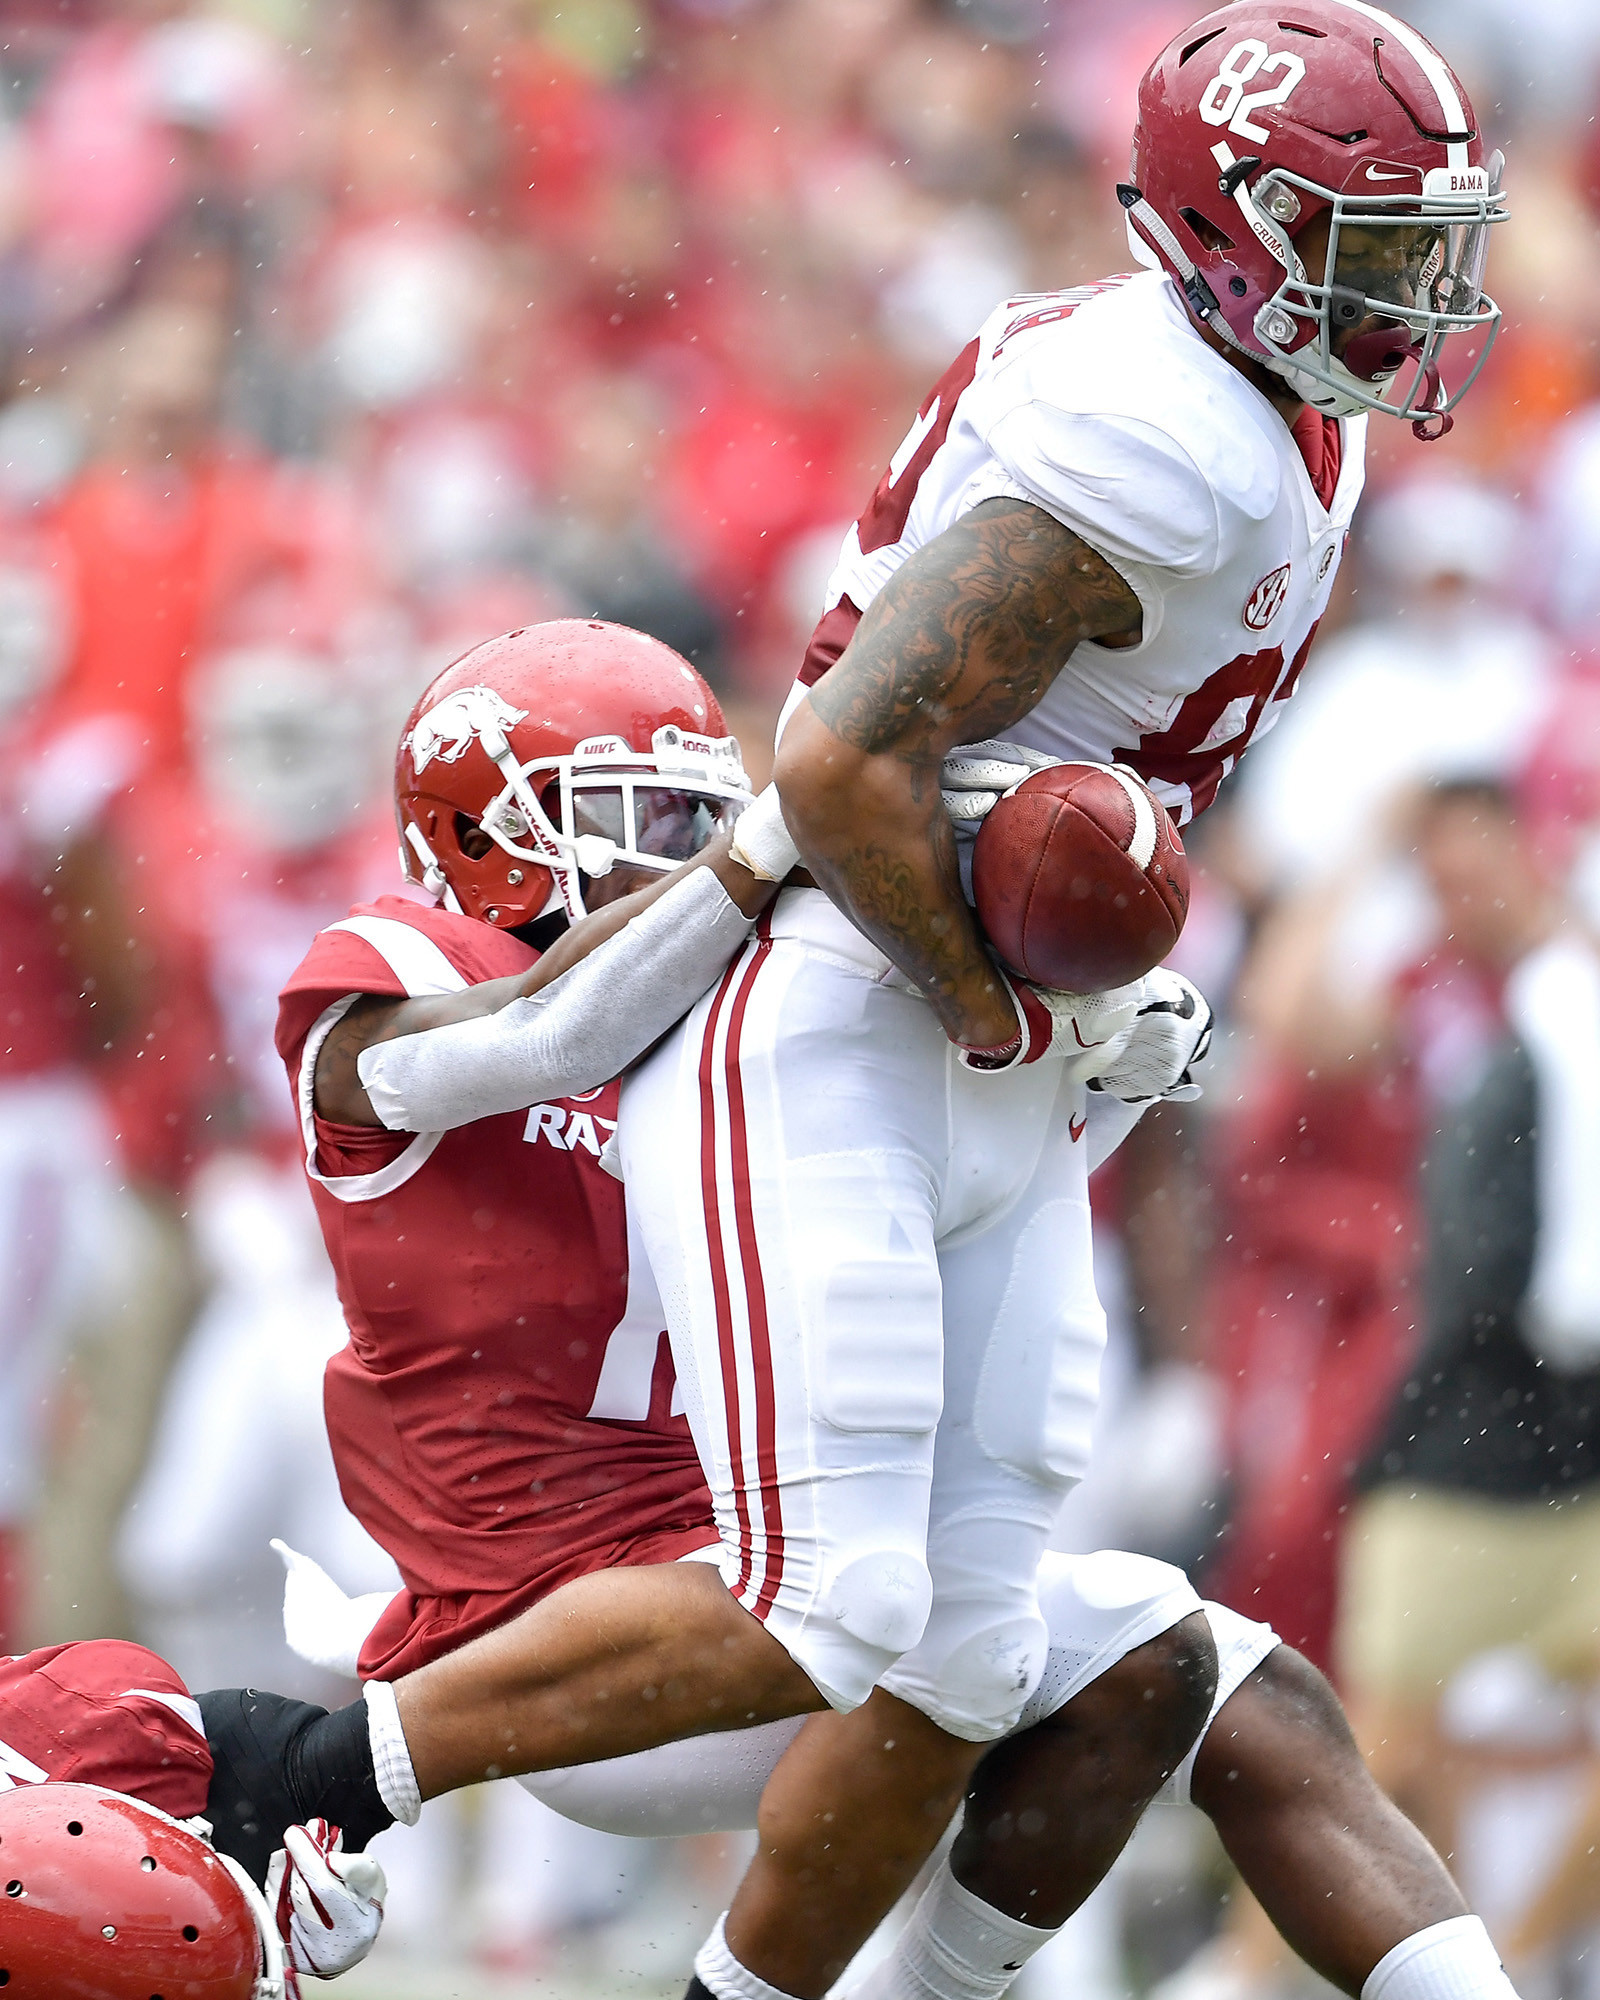 Alabama Crimson Tide tight end Irv Smith Jr. (82) fumbles the ball near the goal line after a long run in the first half of the NCAA football game against the Arkansas Razorbacks at Razorback Stadium on Oct. 6, 2018, in Fayetteville, Ark. Alabama defeated Arkansas 65-31. (Photo by Lee Walls)